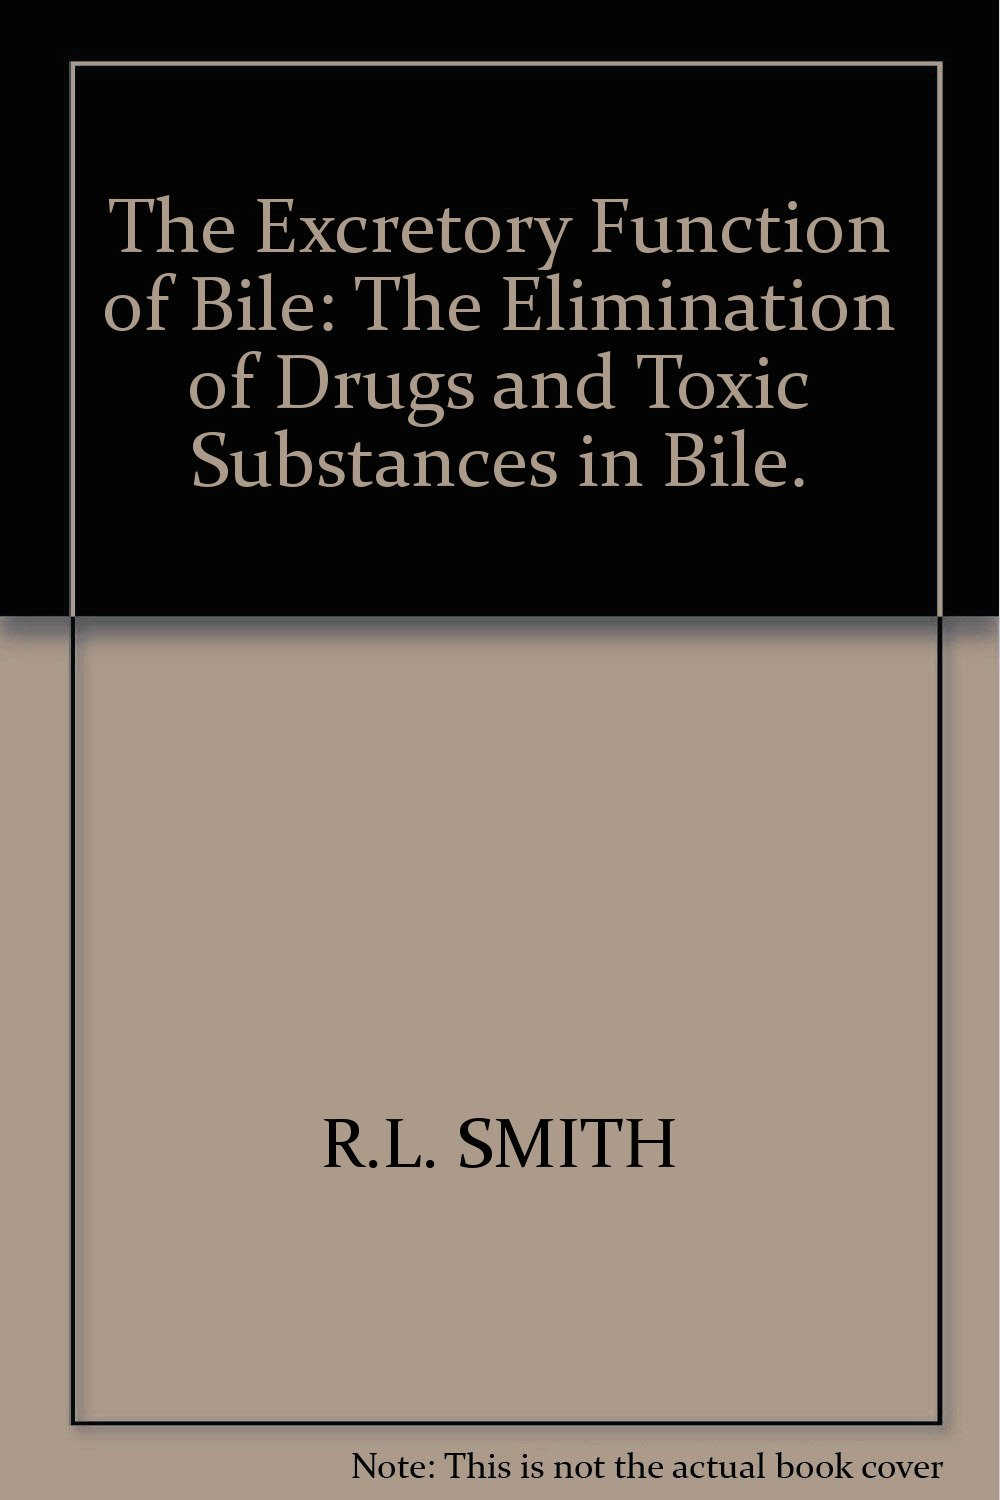 The Excretory Function Of Bile The Elimination Of Drugs And Toxic